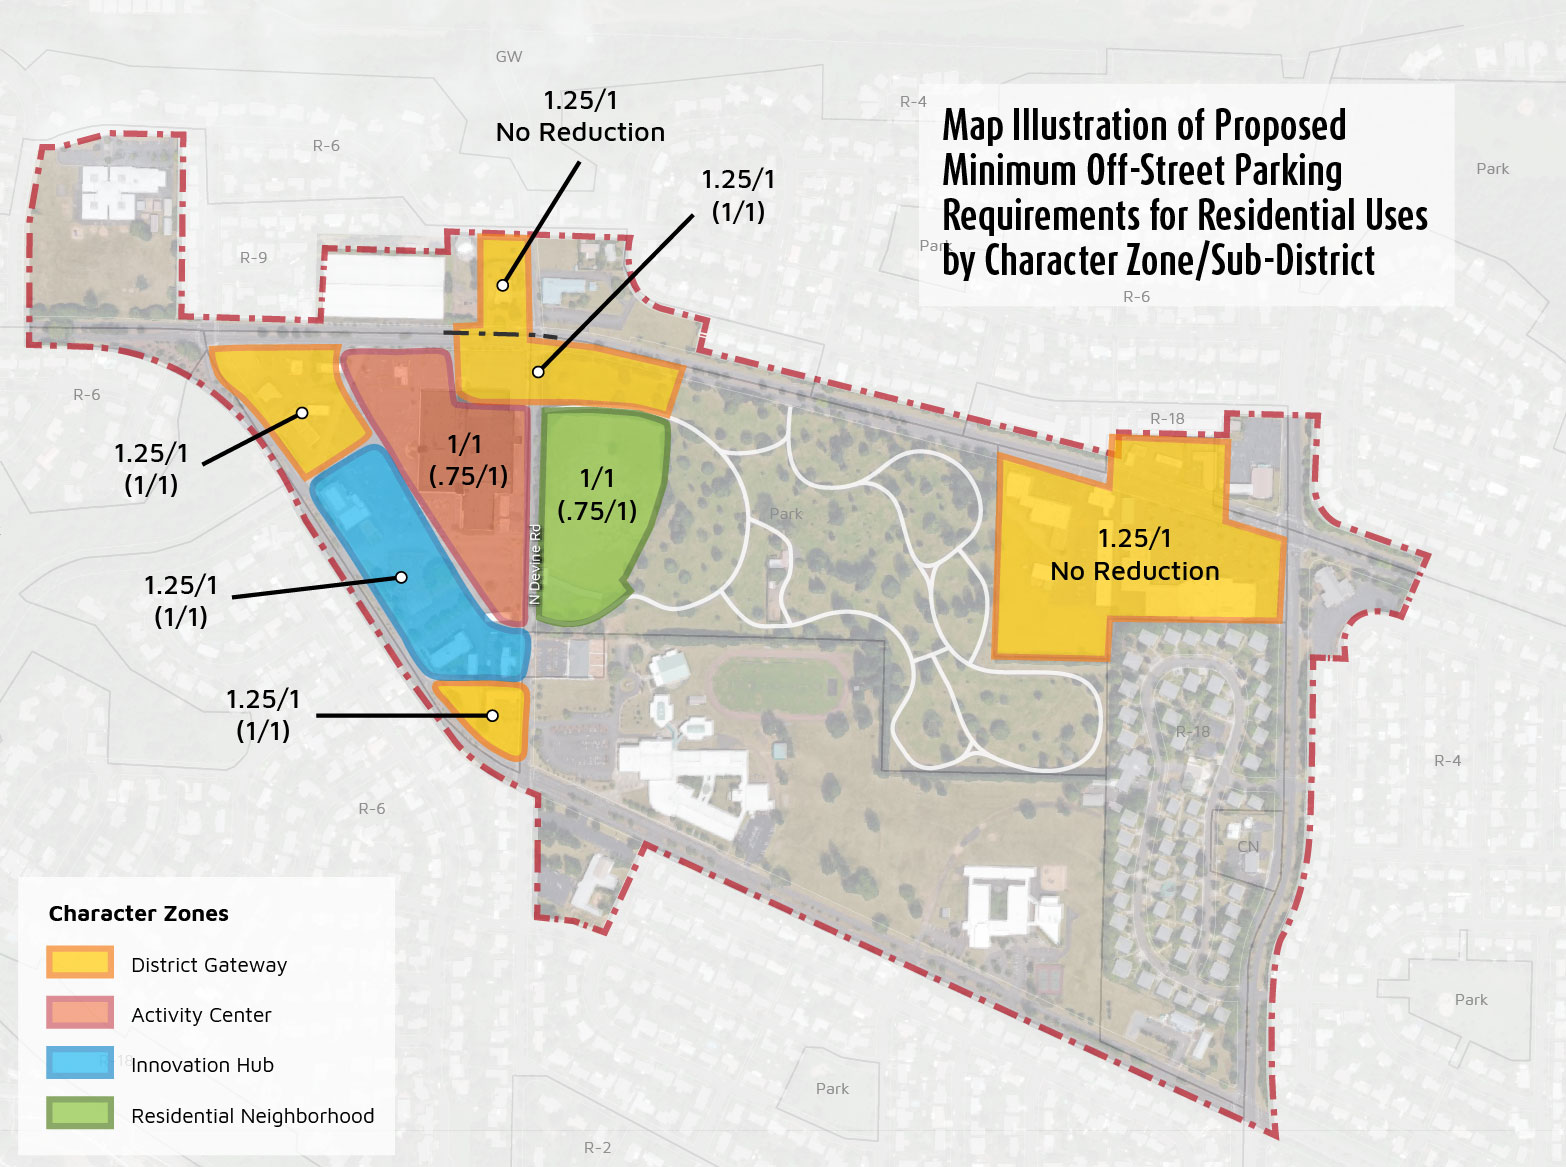 Map showing proposed minimum residential parking requirements, and proposed reductions with Transportation Demand Management (TDM), for the HX zone by sub-district. The sub-districts established for the District include the Activity Center, Residential Neighborhood, Innovation Hub, and District Gateways.